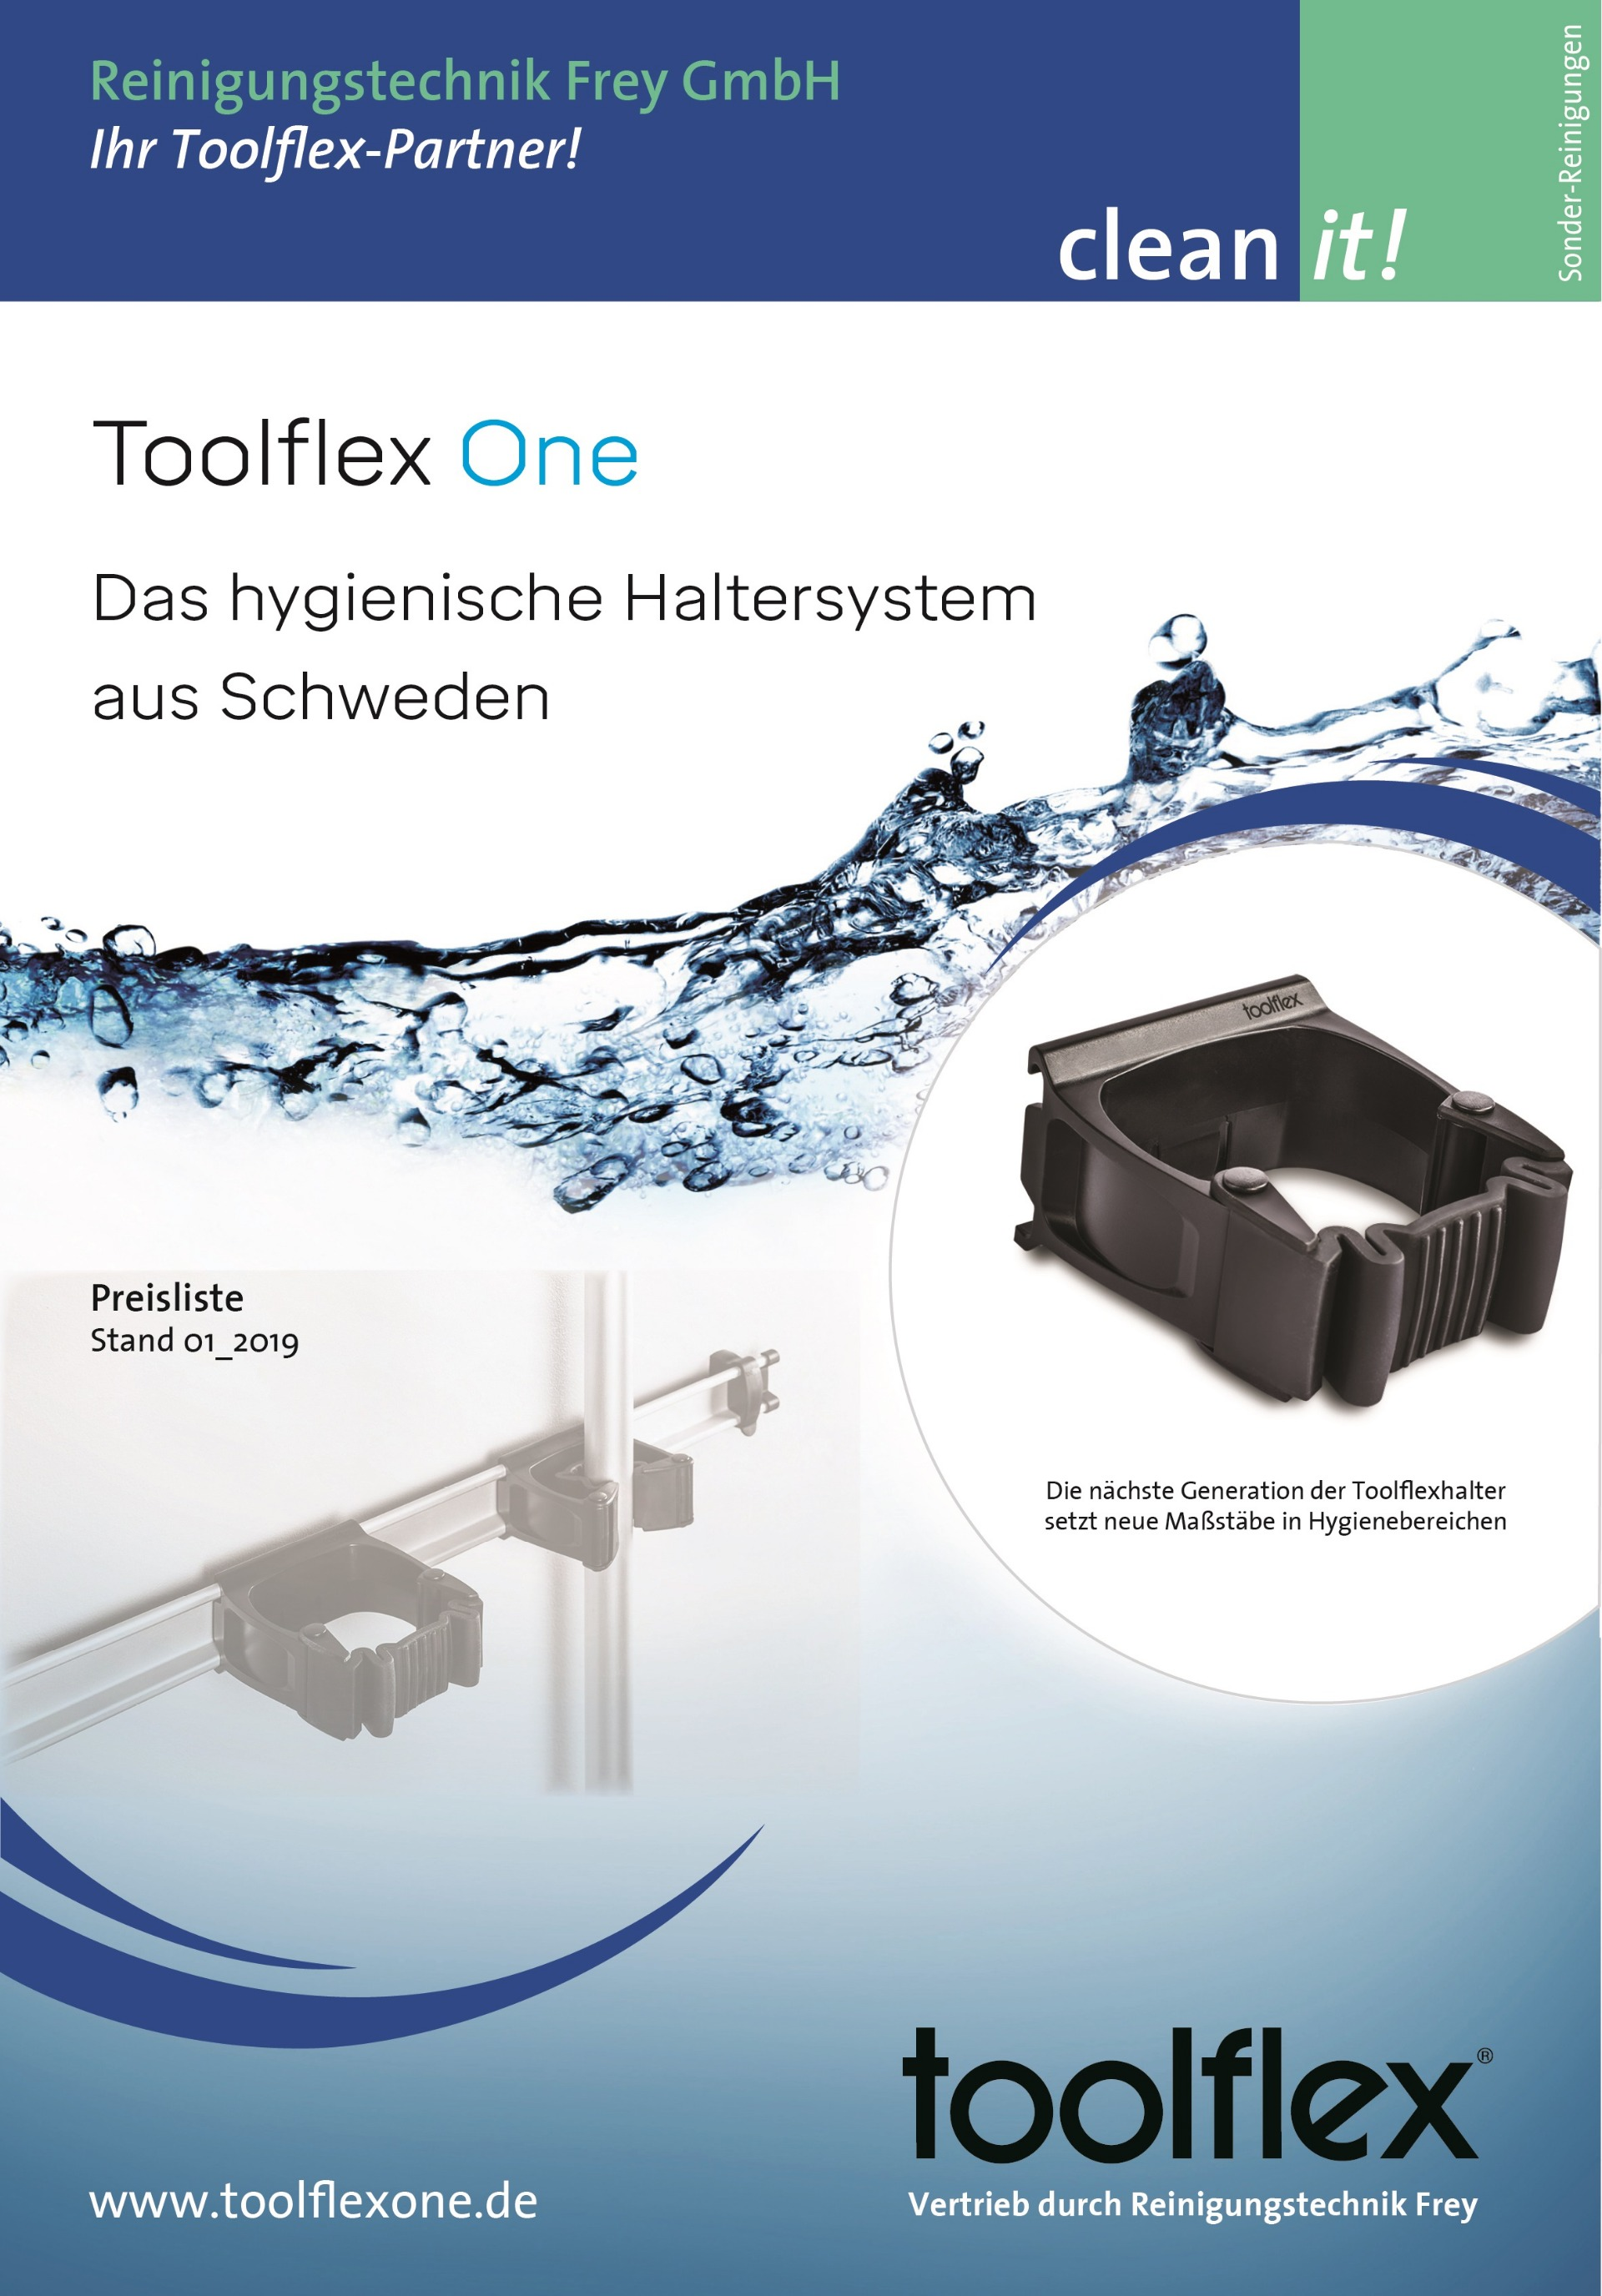 Toolflex One Preisliste 01/2019